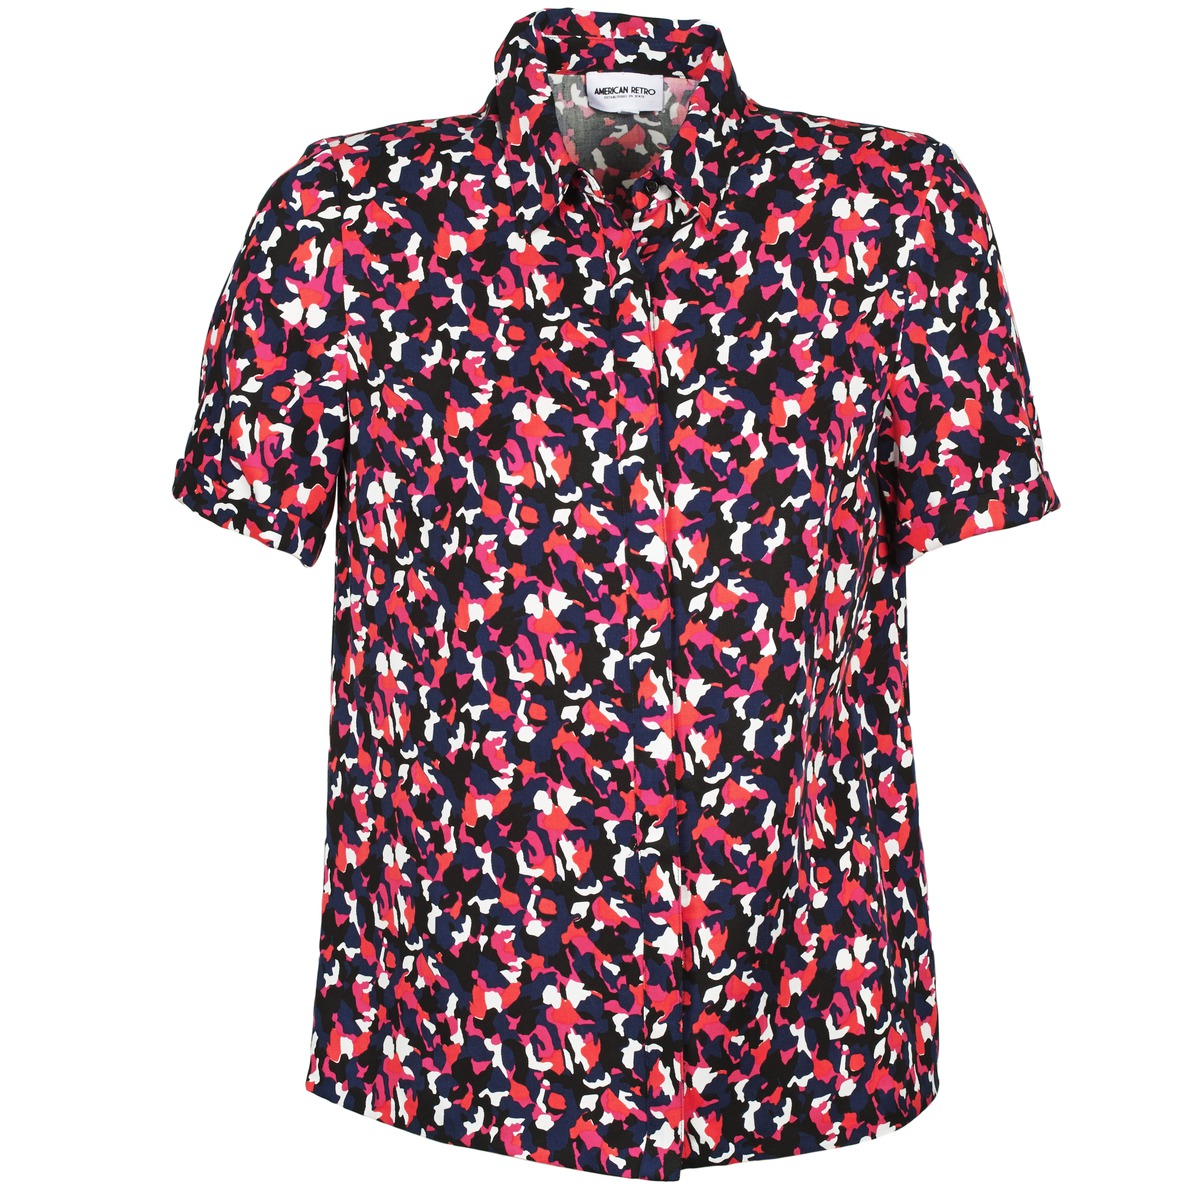 American Retro NEOSHIRT Schwarz / Rose / Orange